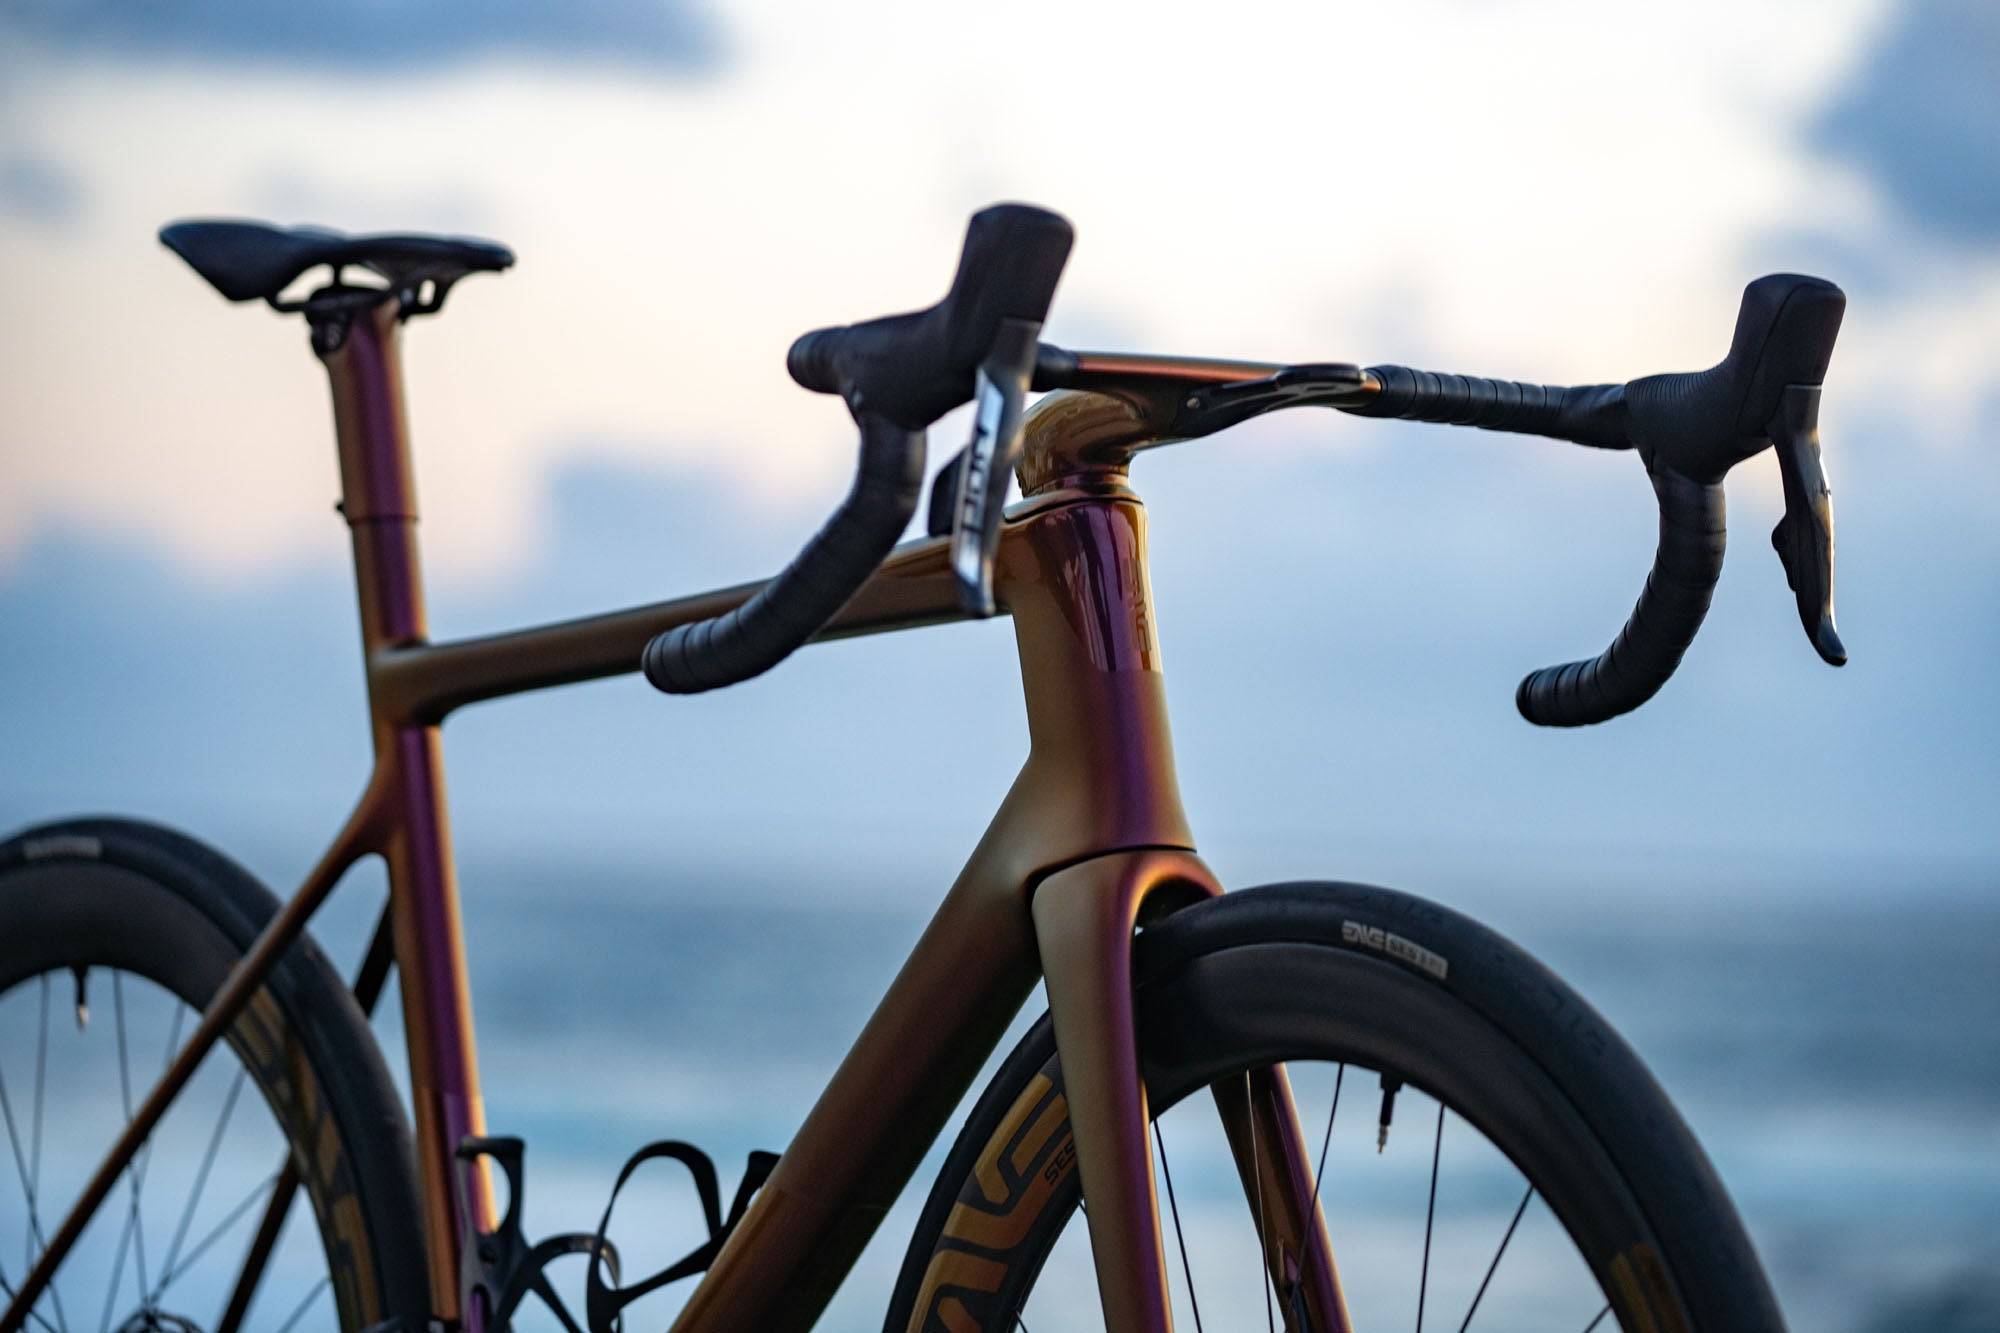 ENVE Custom Road bike with that sunset lightbro